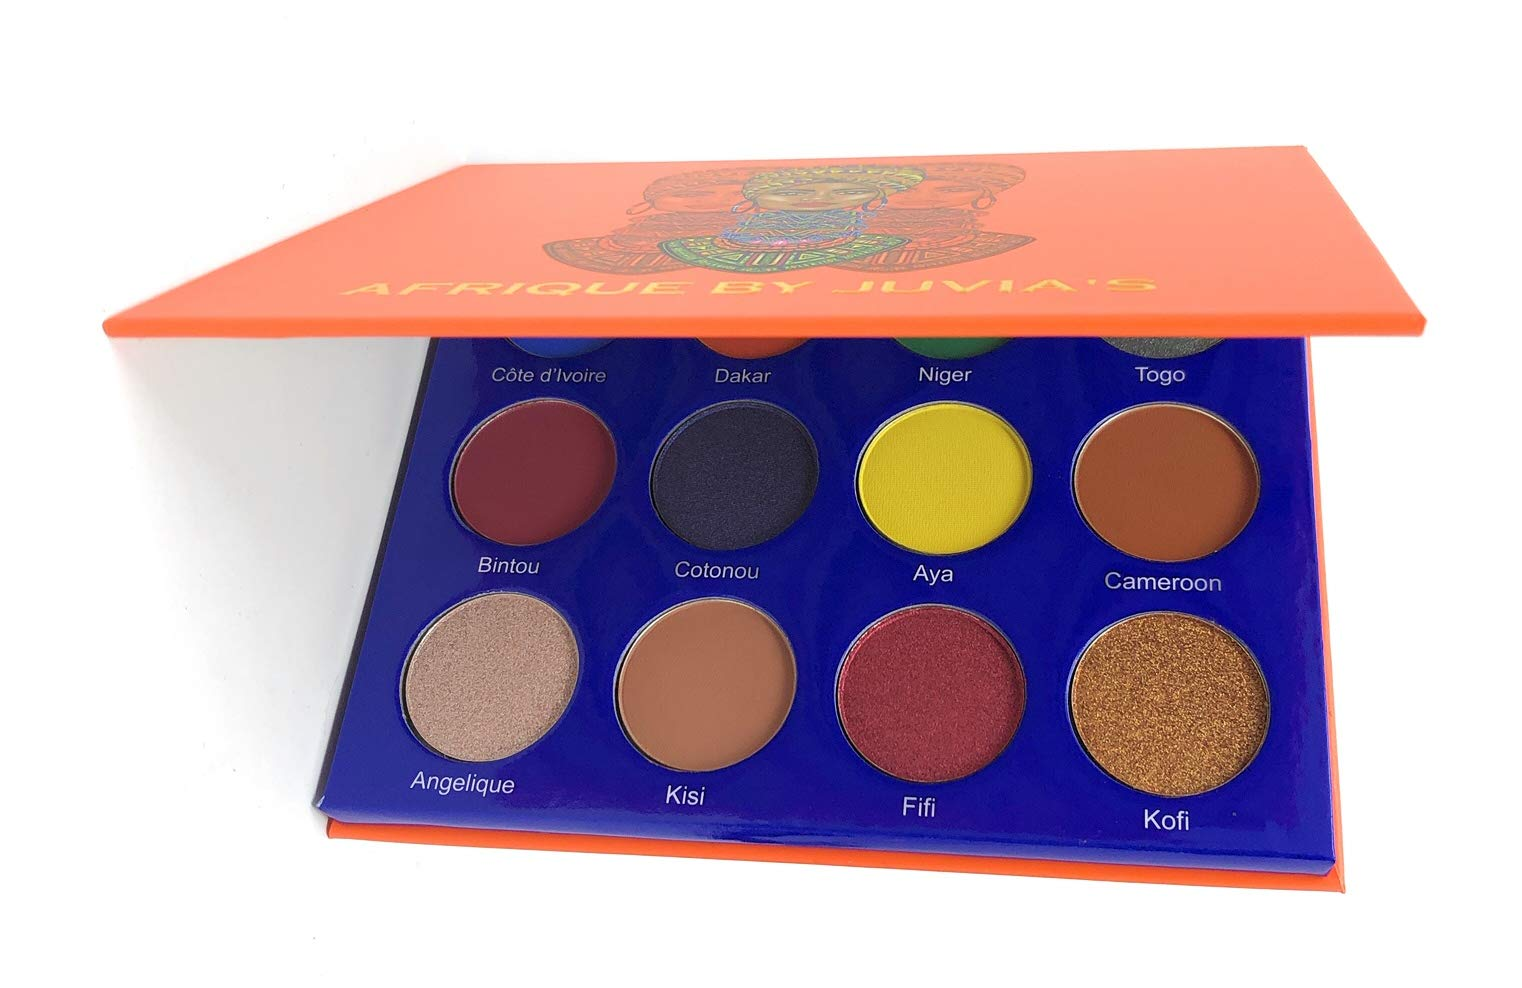 The Afrique Palette by Juvia's